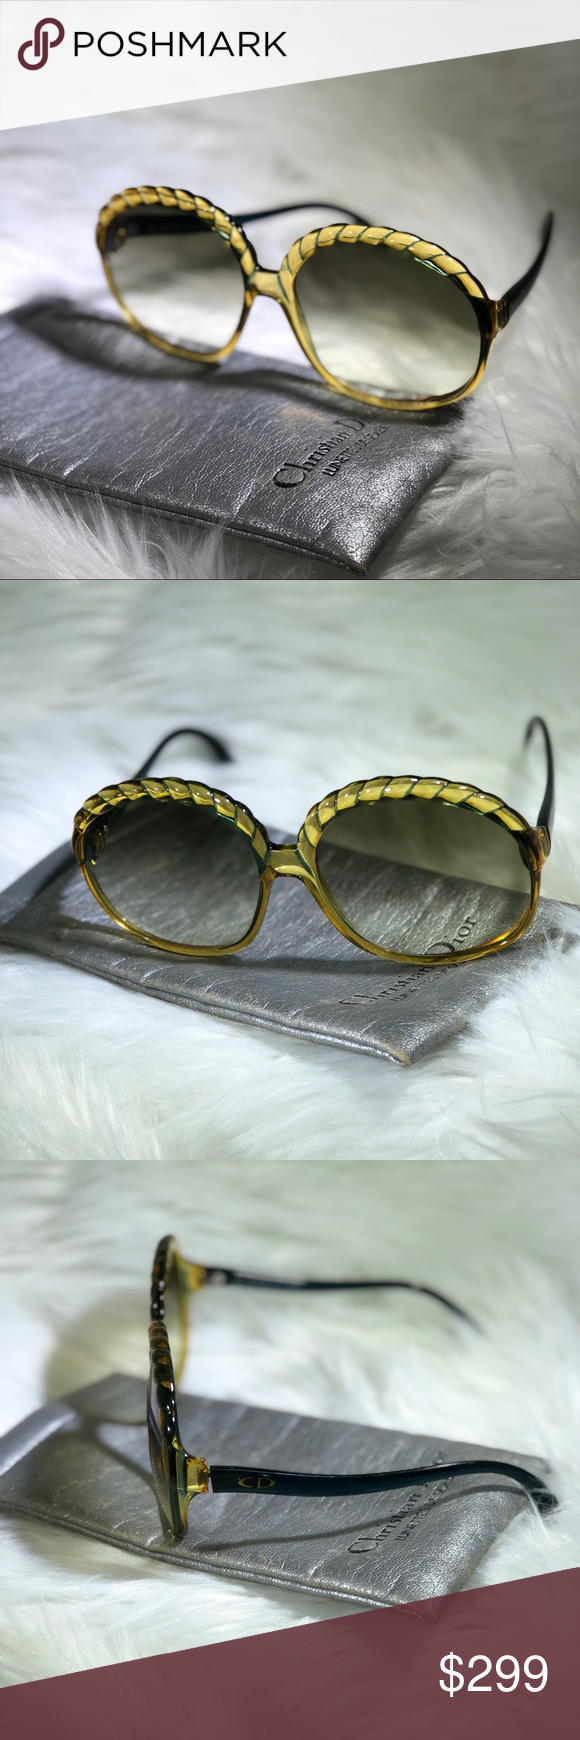 e4ff5c24c51be Rare Vintage Christian Dior Sunglasses Authentic Vintage sunglasses by Christian  Dior (Style 2062).